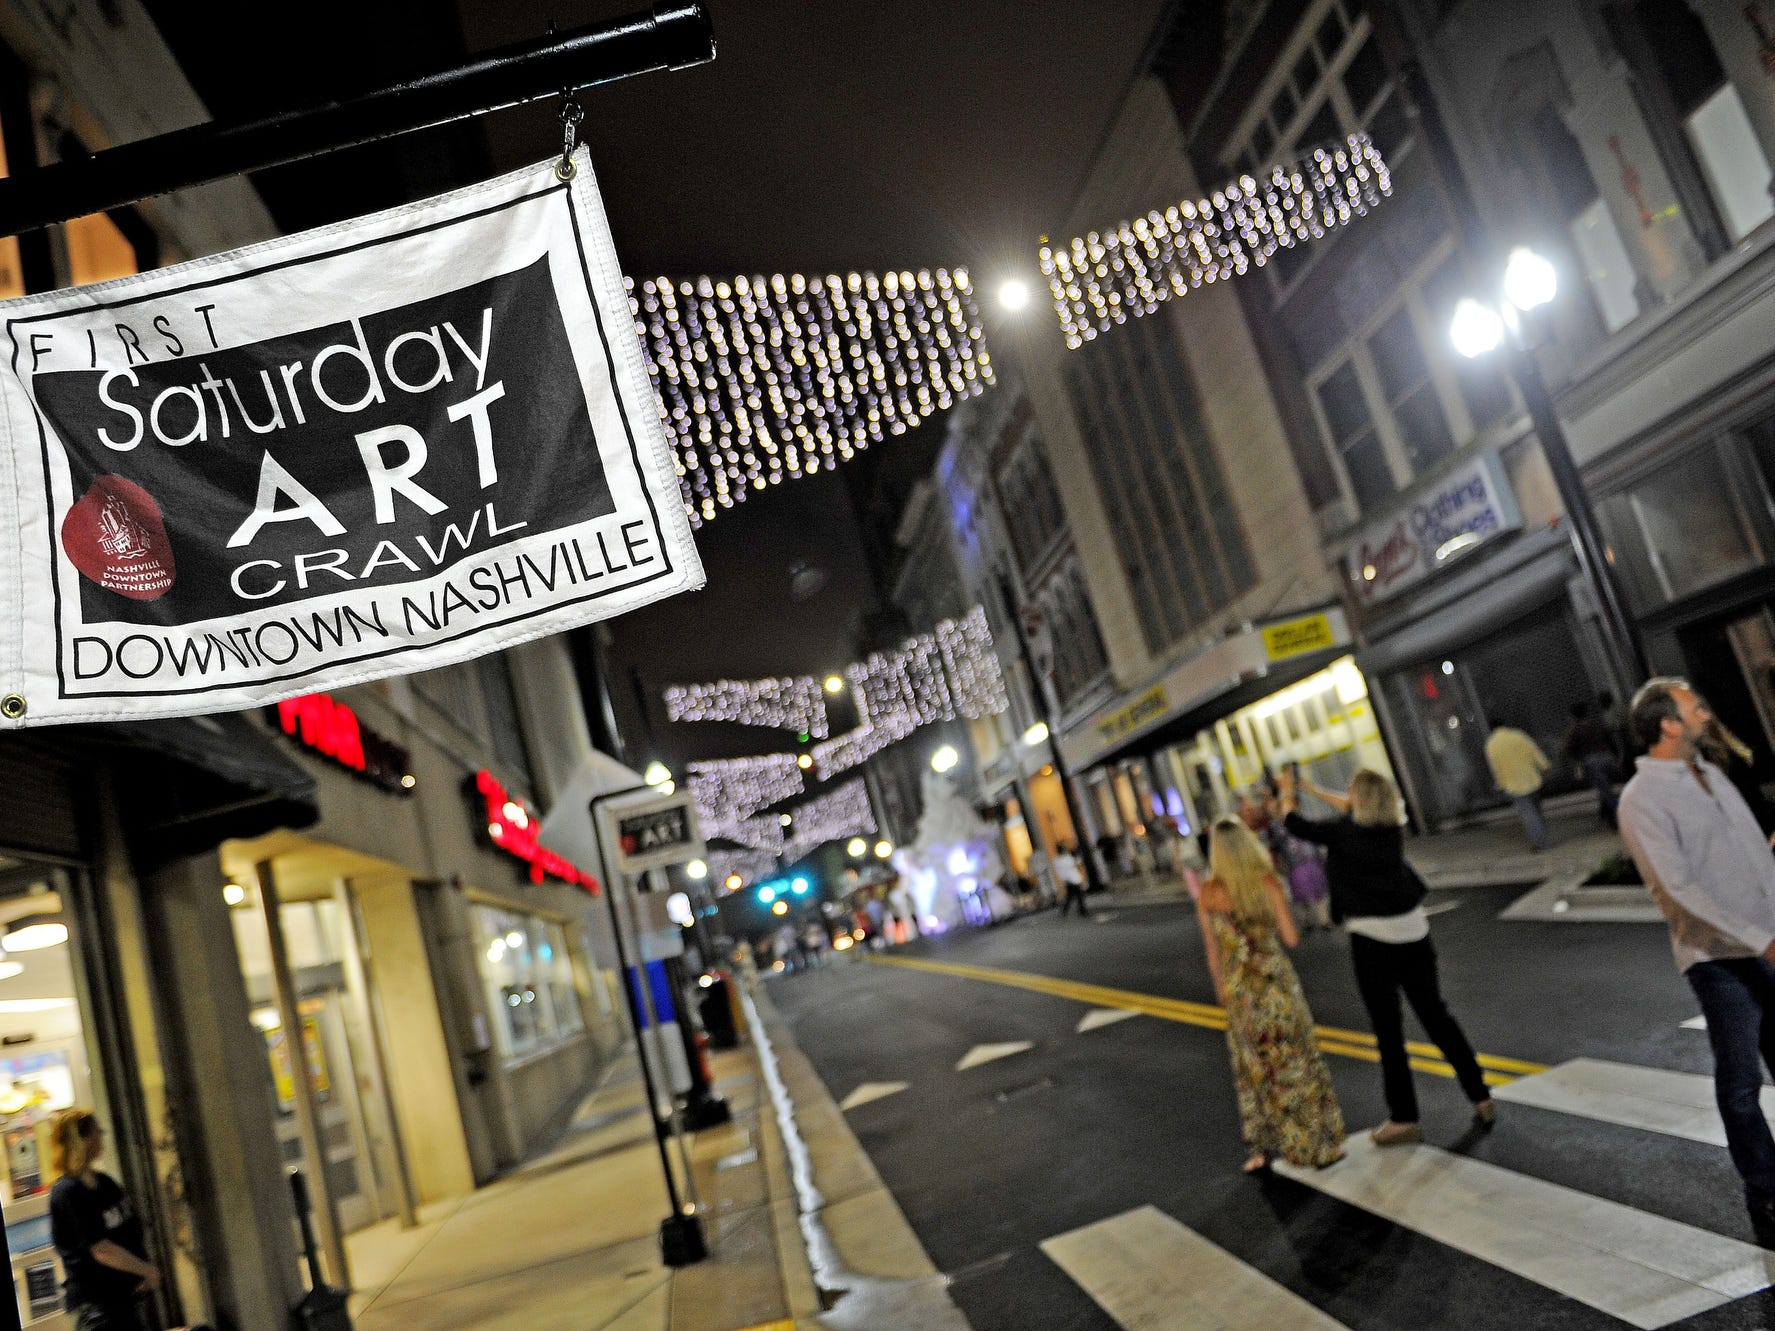 NOV. 3